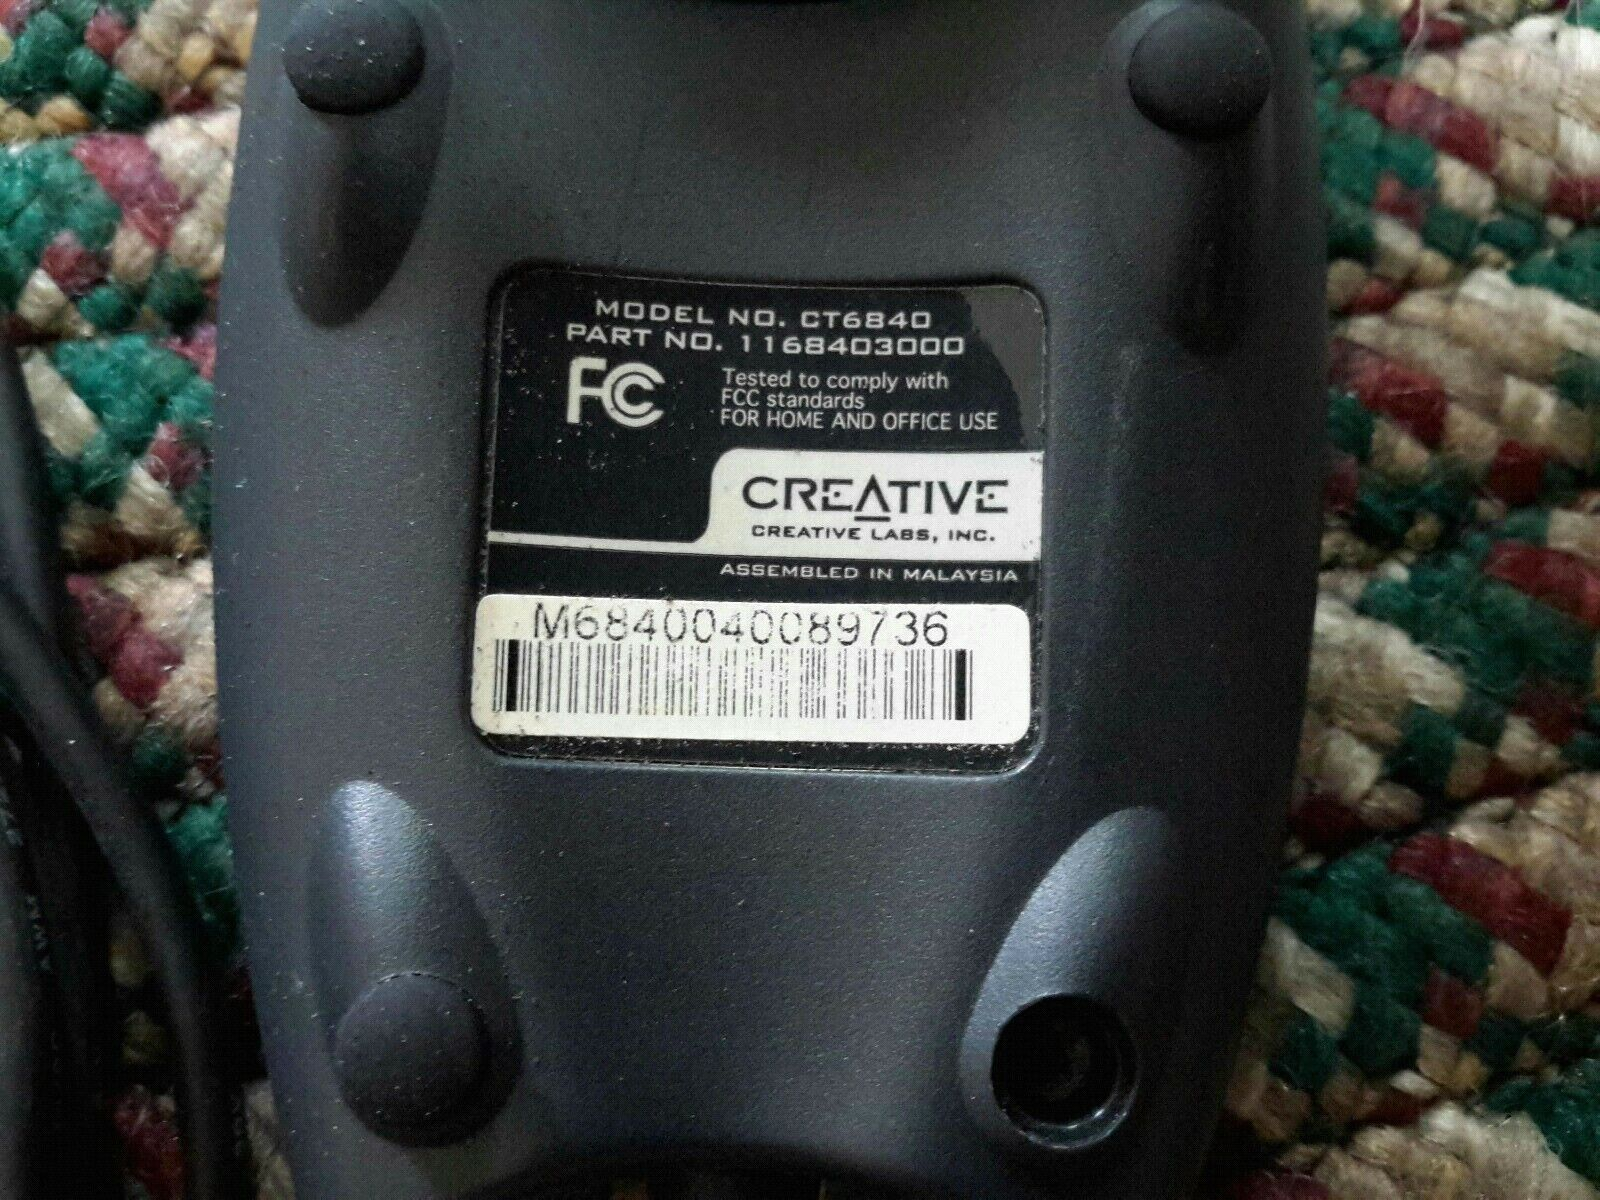 CREATIVE LABS MODEL CT6840 TELECHARGER PILOTE